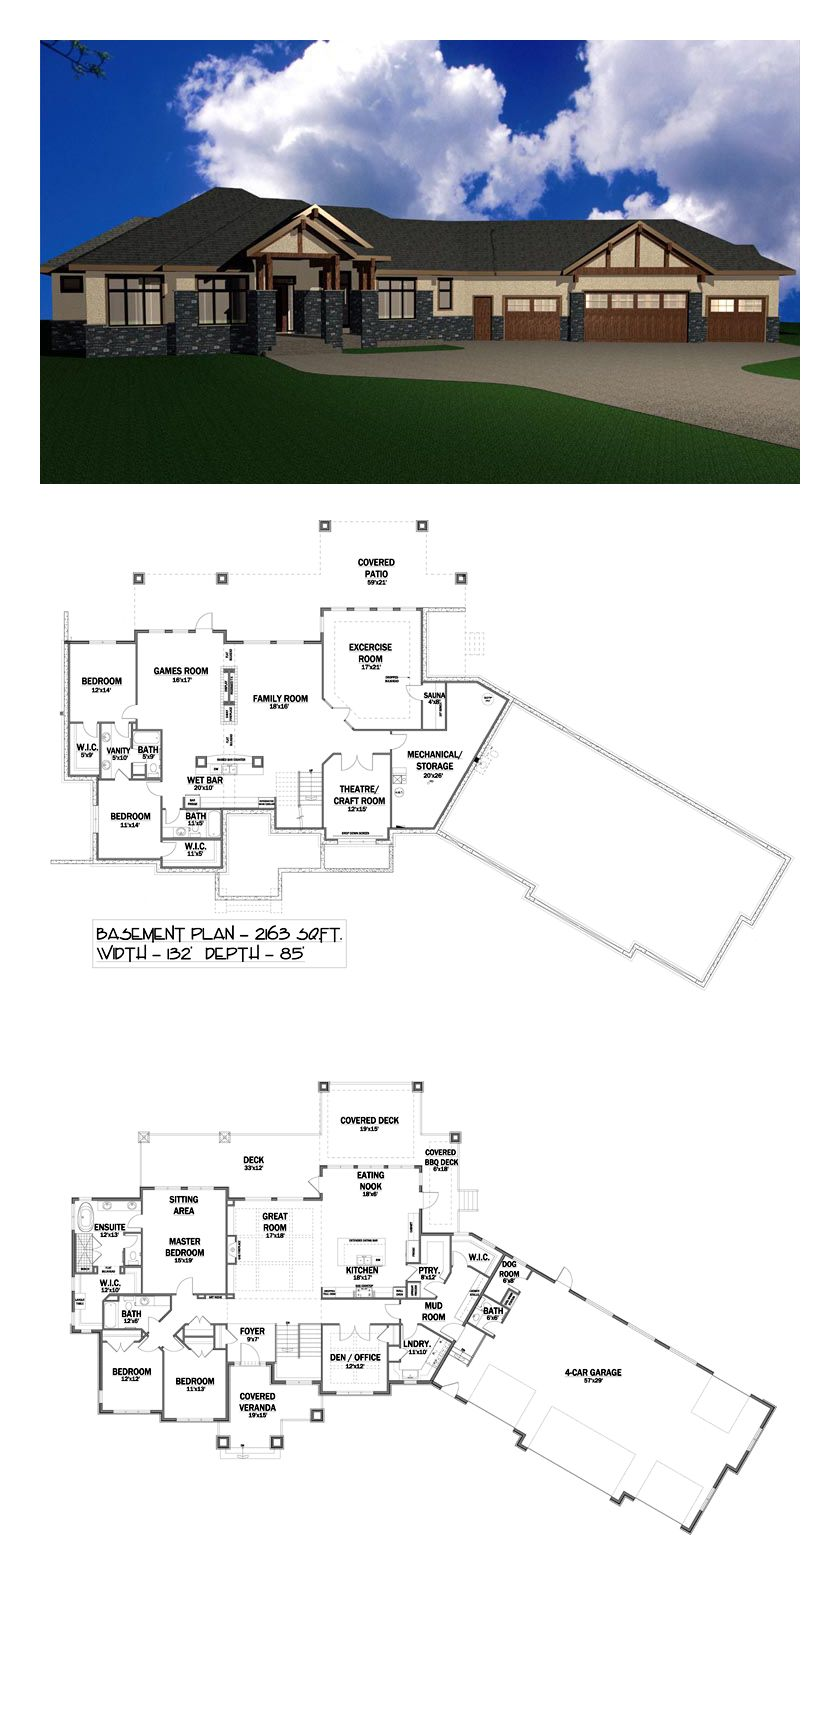 Bungalow Style House Plan 81104 With 5 Bed 5 Bath 4 Car Garage Bungalow Style House Plans Bungalow Floor Plans Architectural Design House Plans